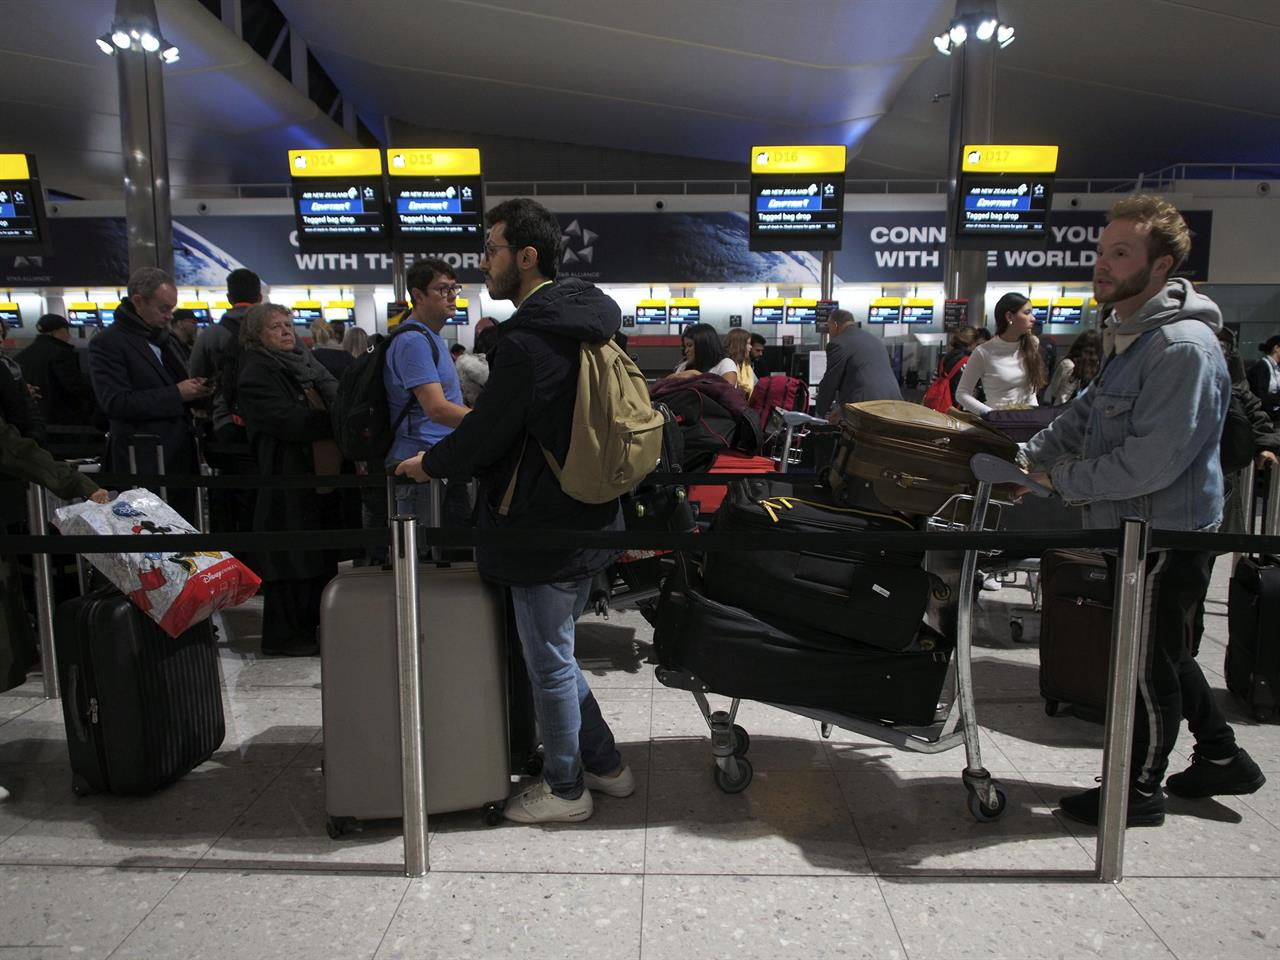 Drap New York London S Heathrow Briefly Halts Flights Due To Drone Report Am